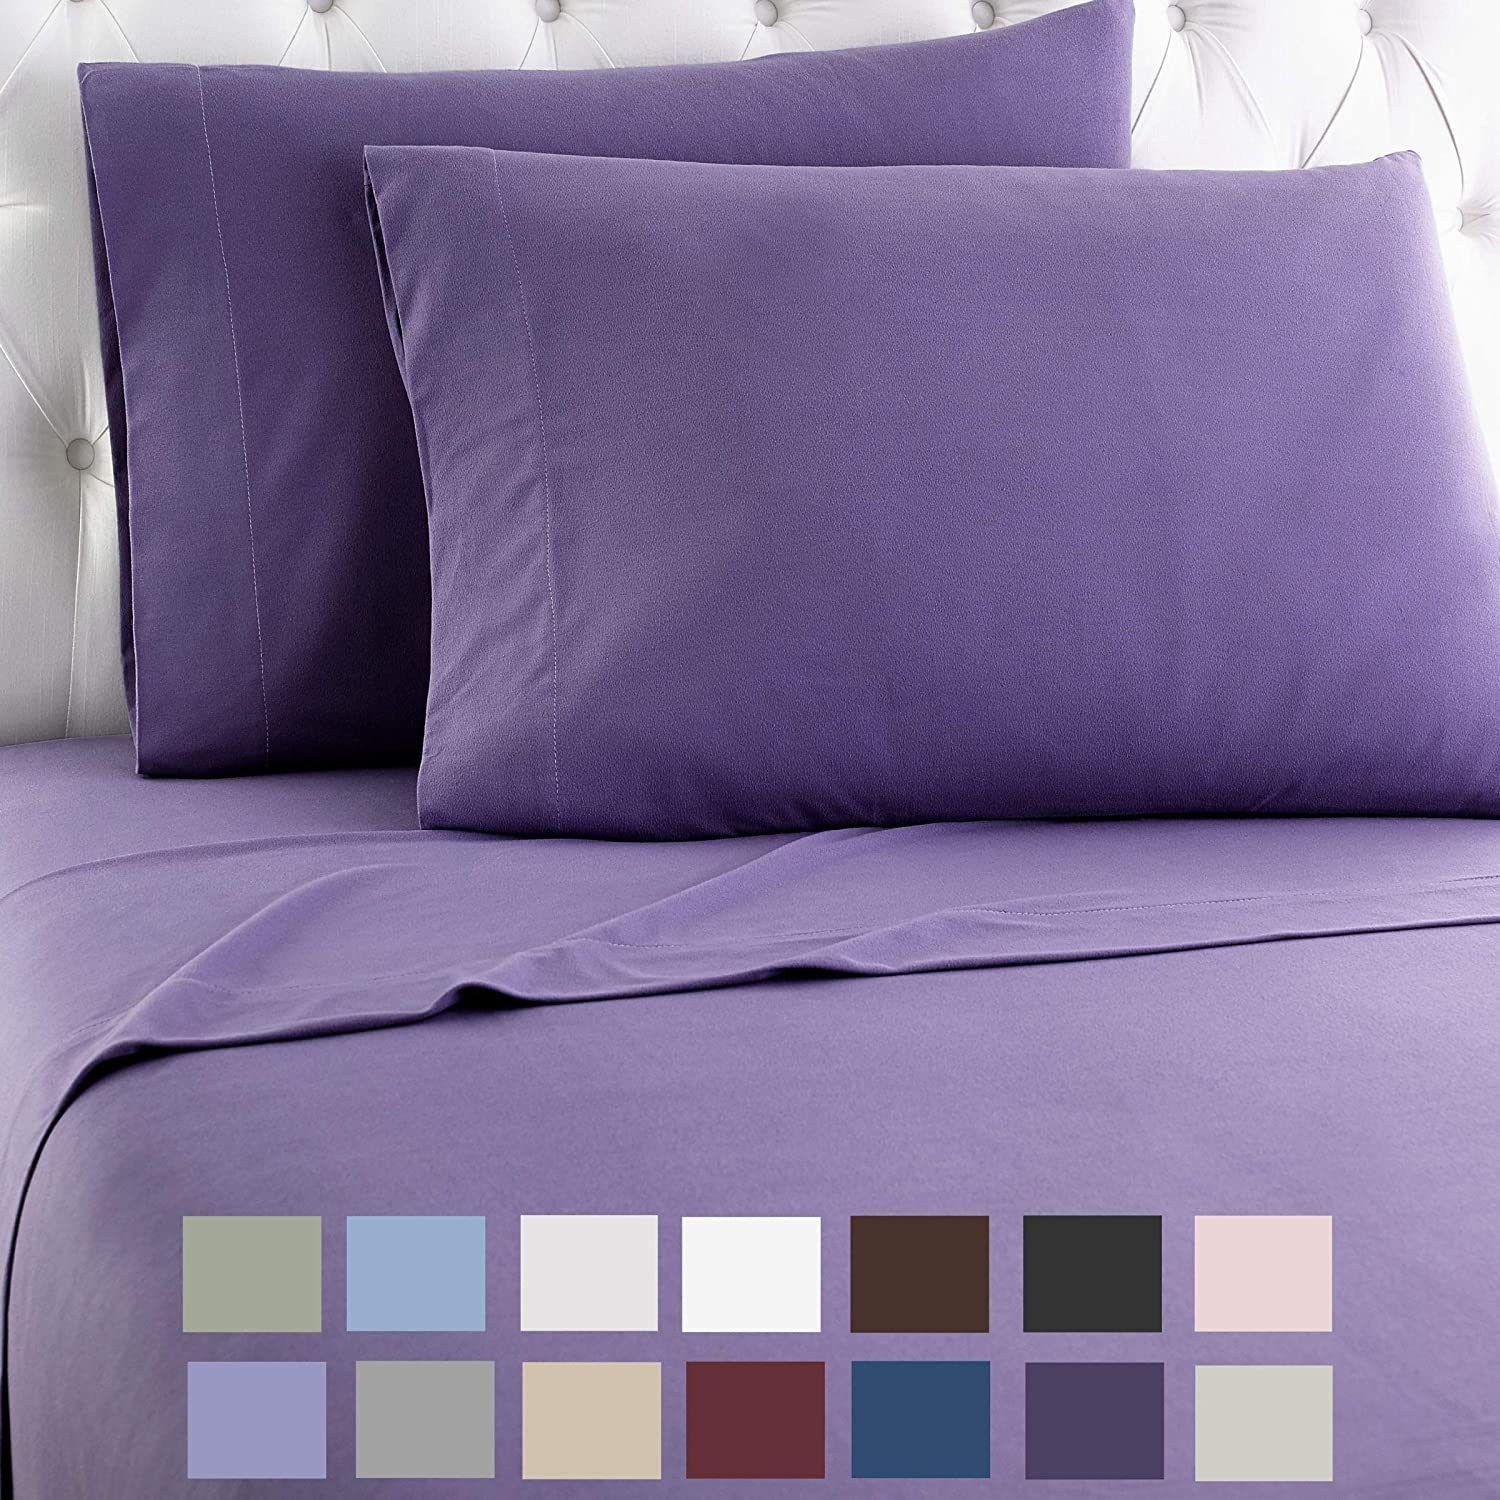 Thermee Micro Flannel Shavel Home Products Sheet Set, Queen, Purple